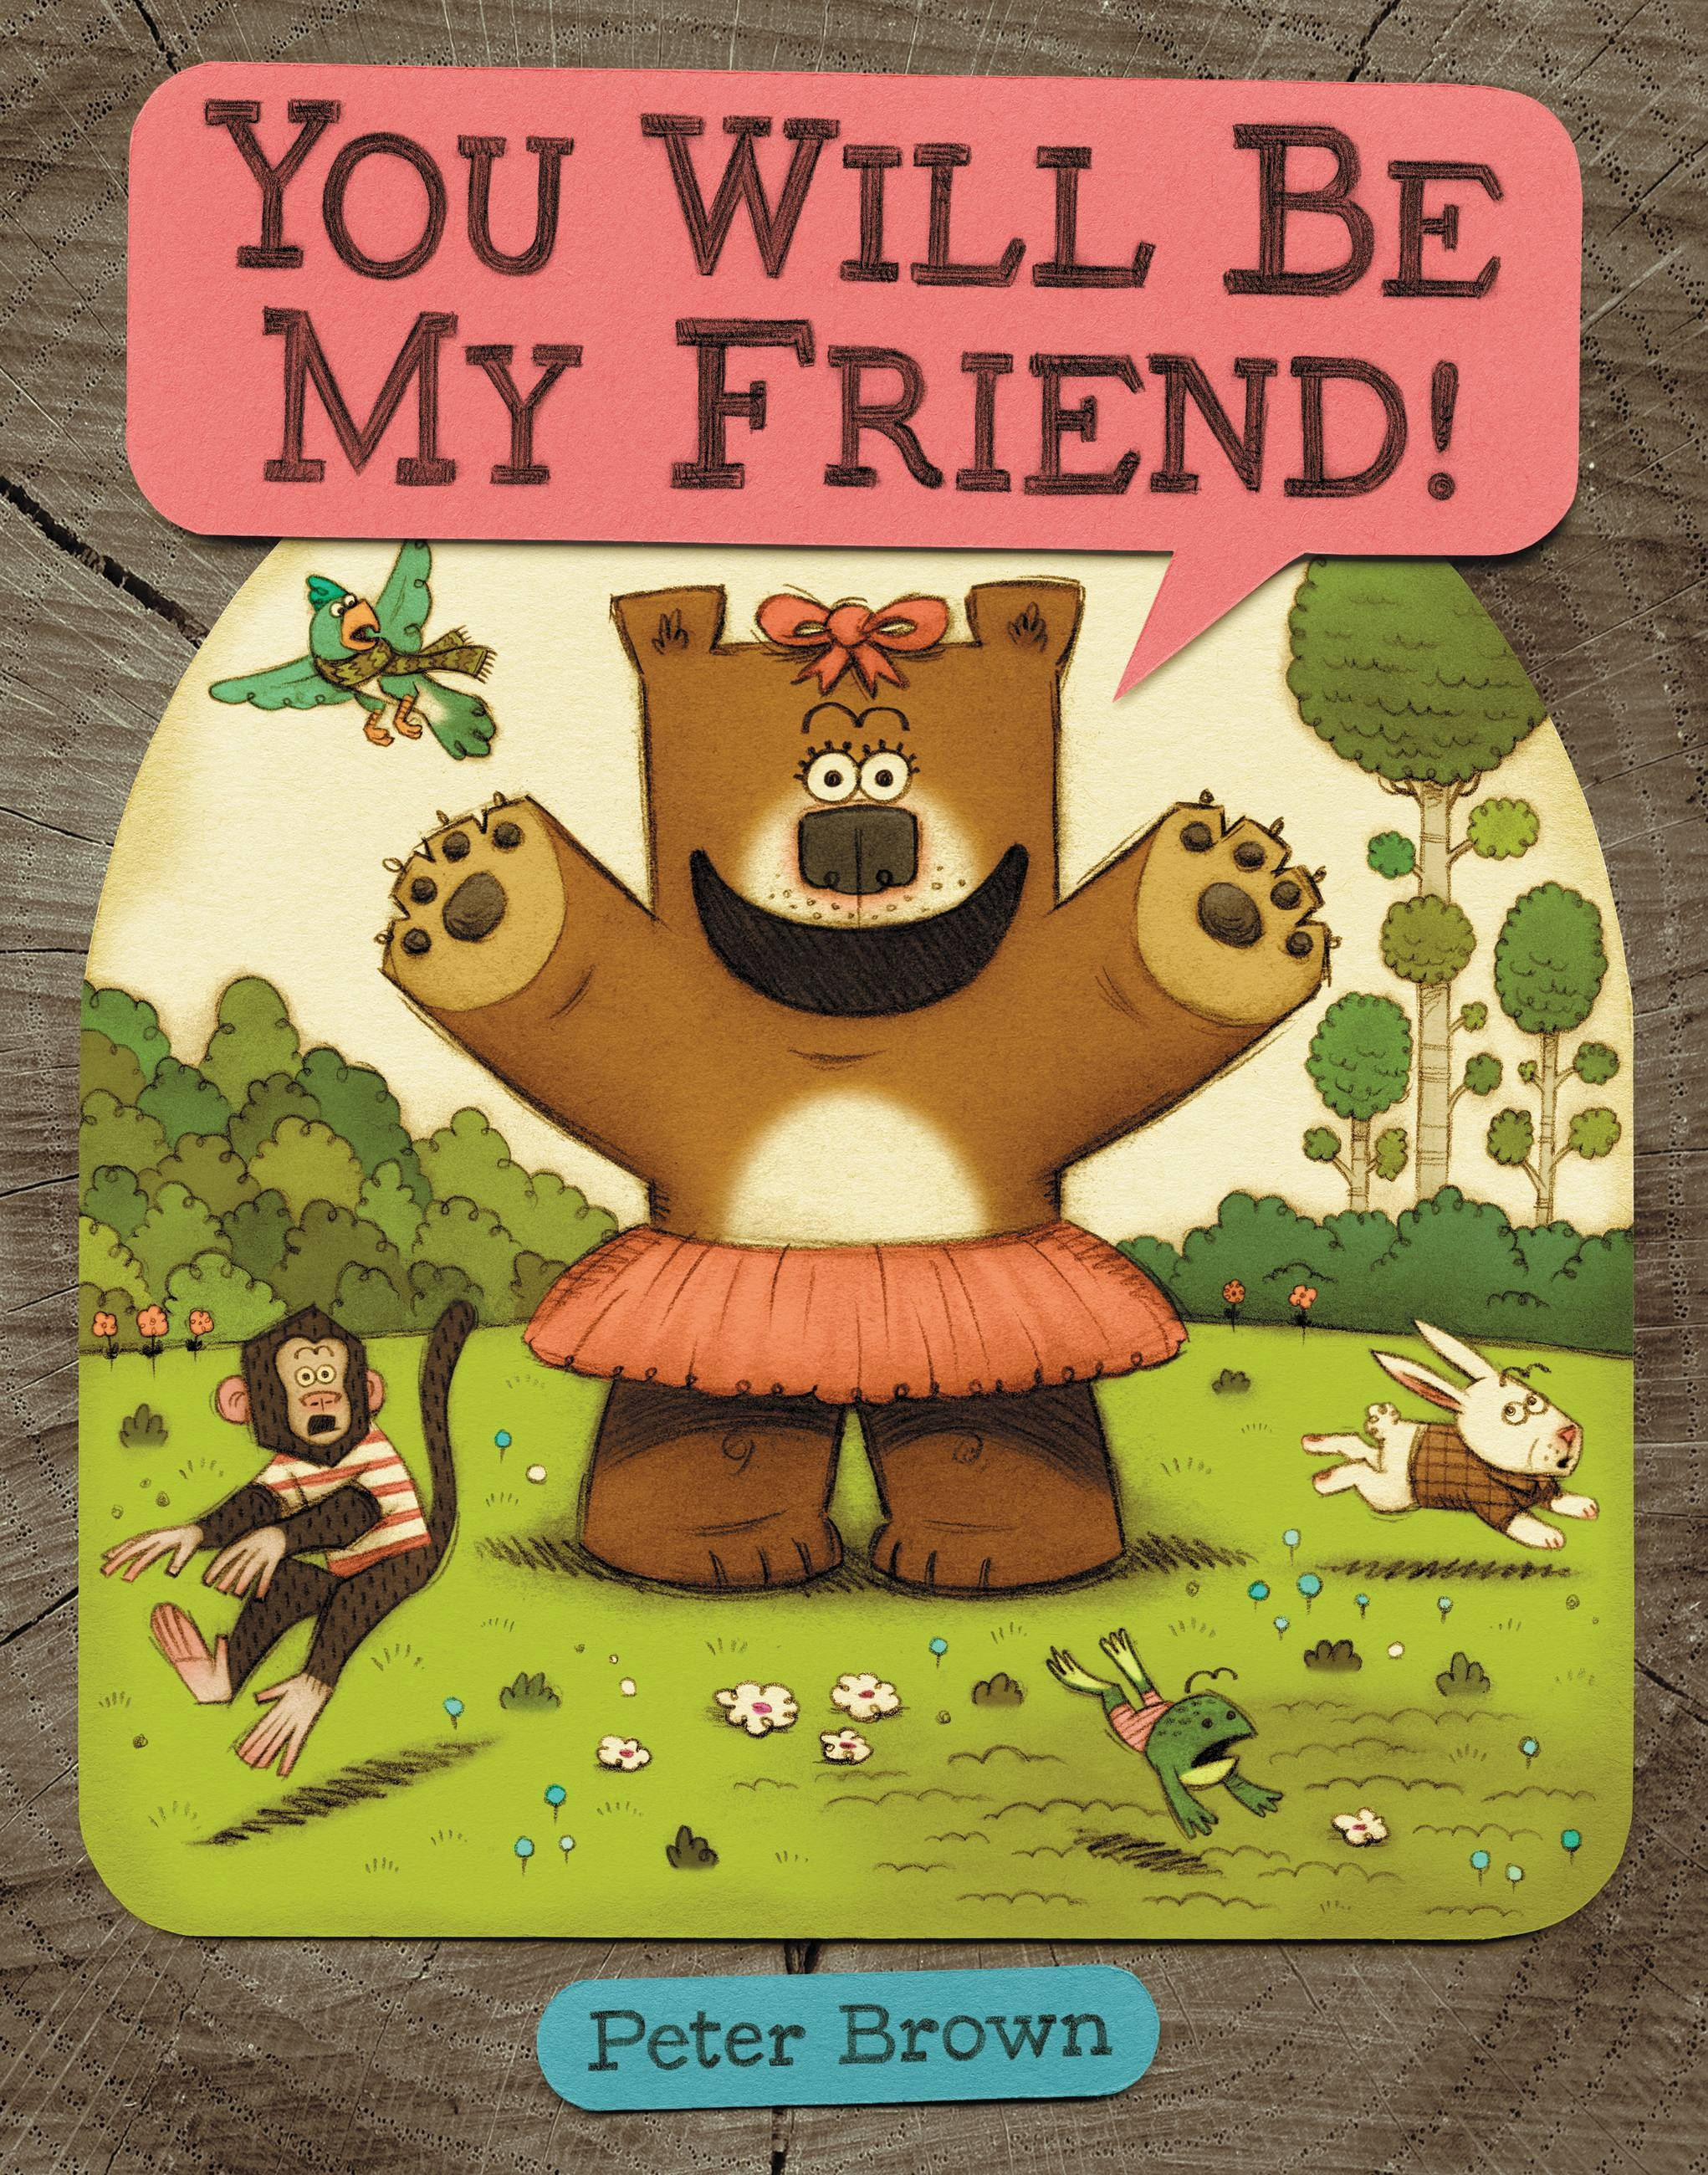 YOU WILL BE MY FRIEND! by Peter Brown | Little, Brown Books for ...